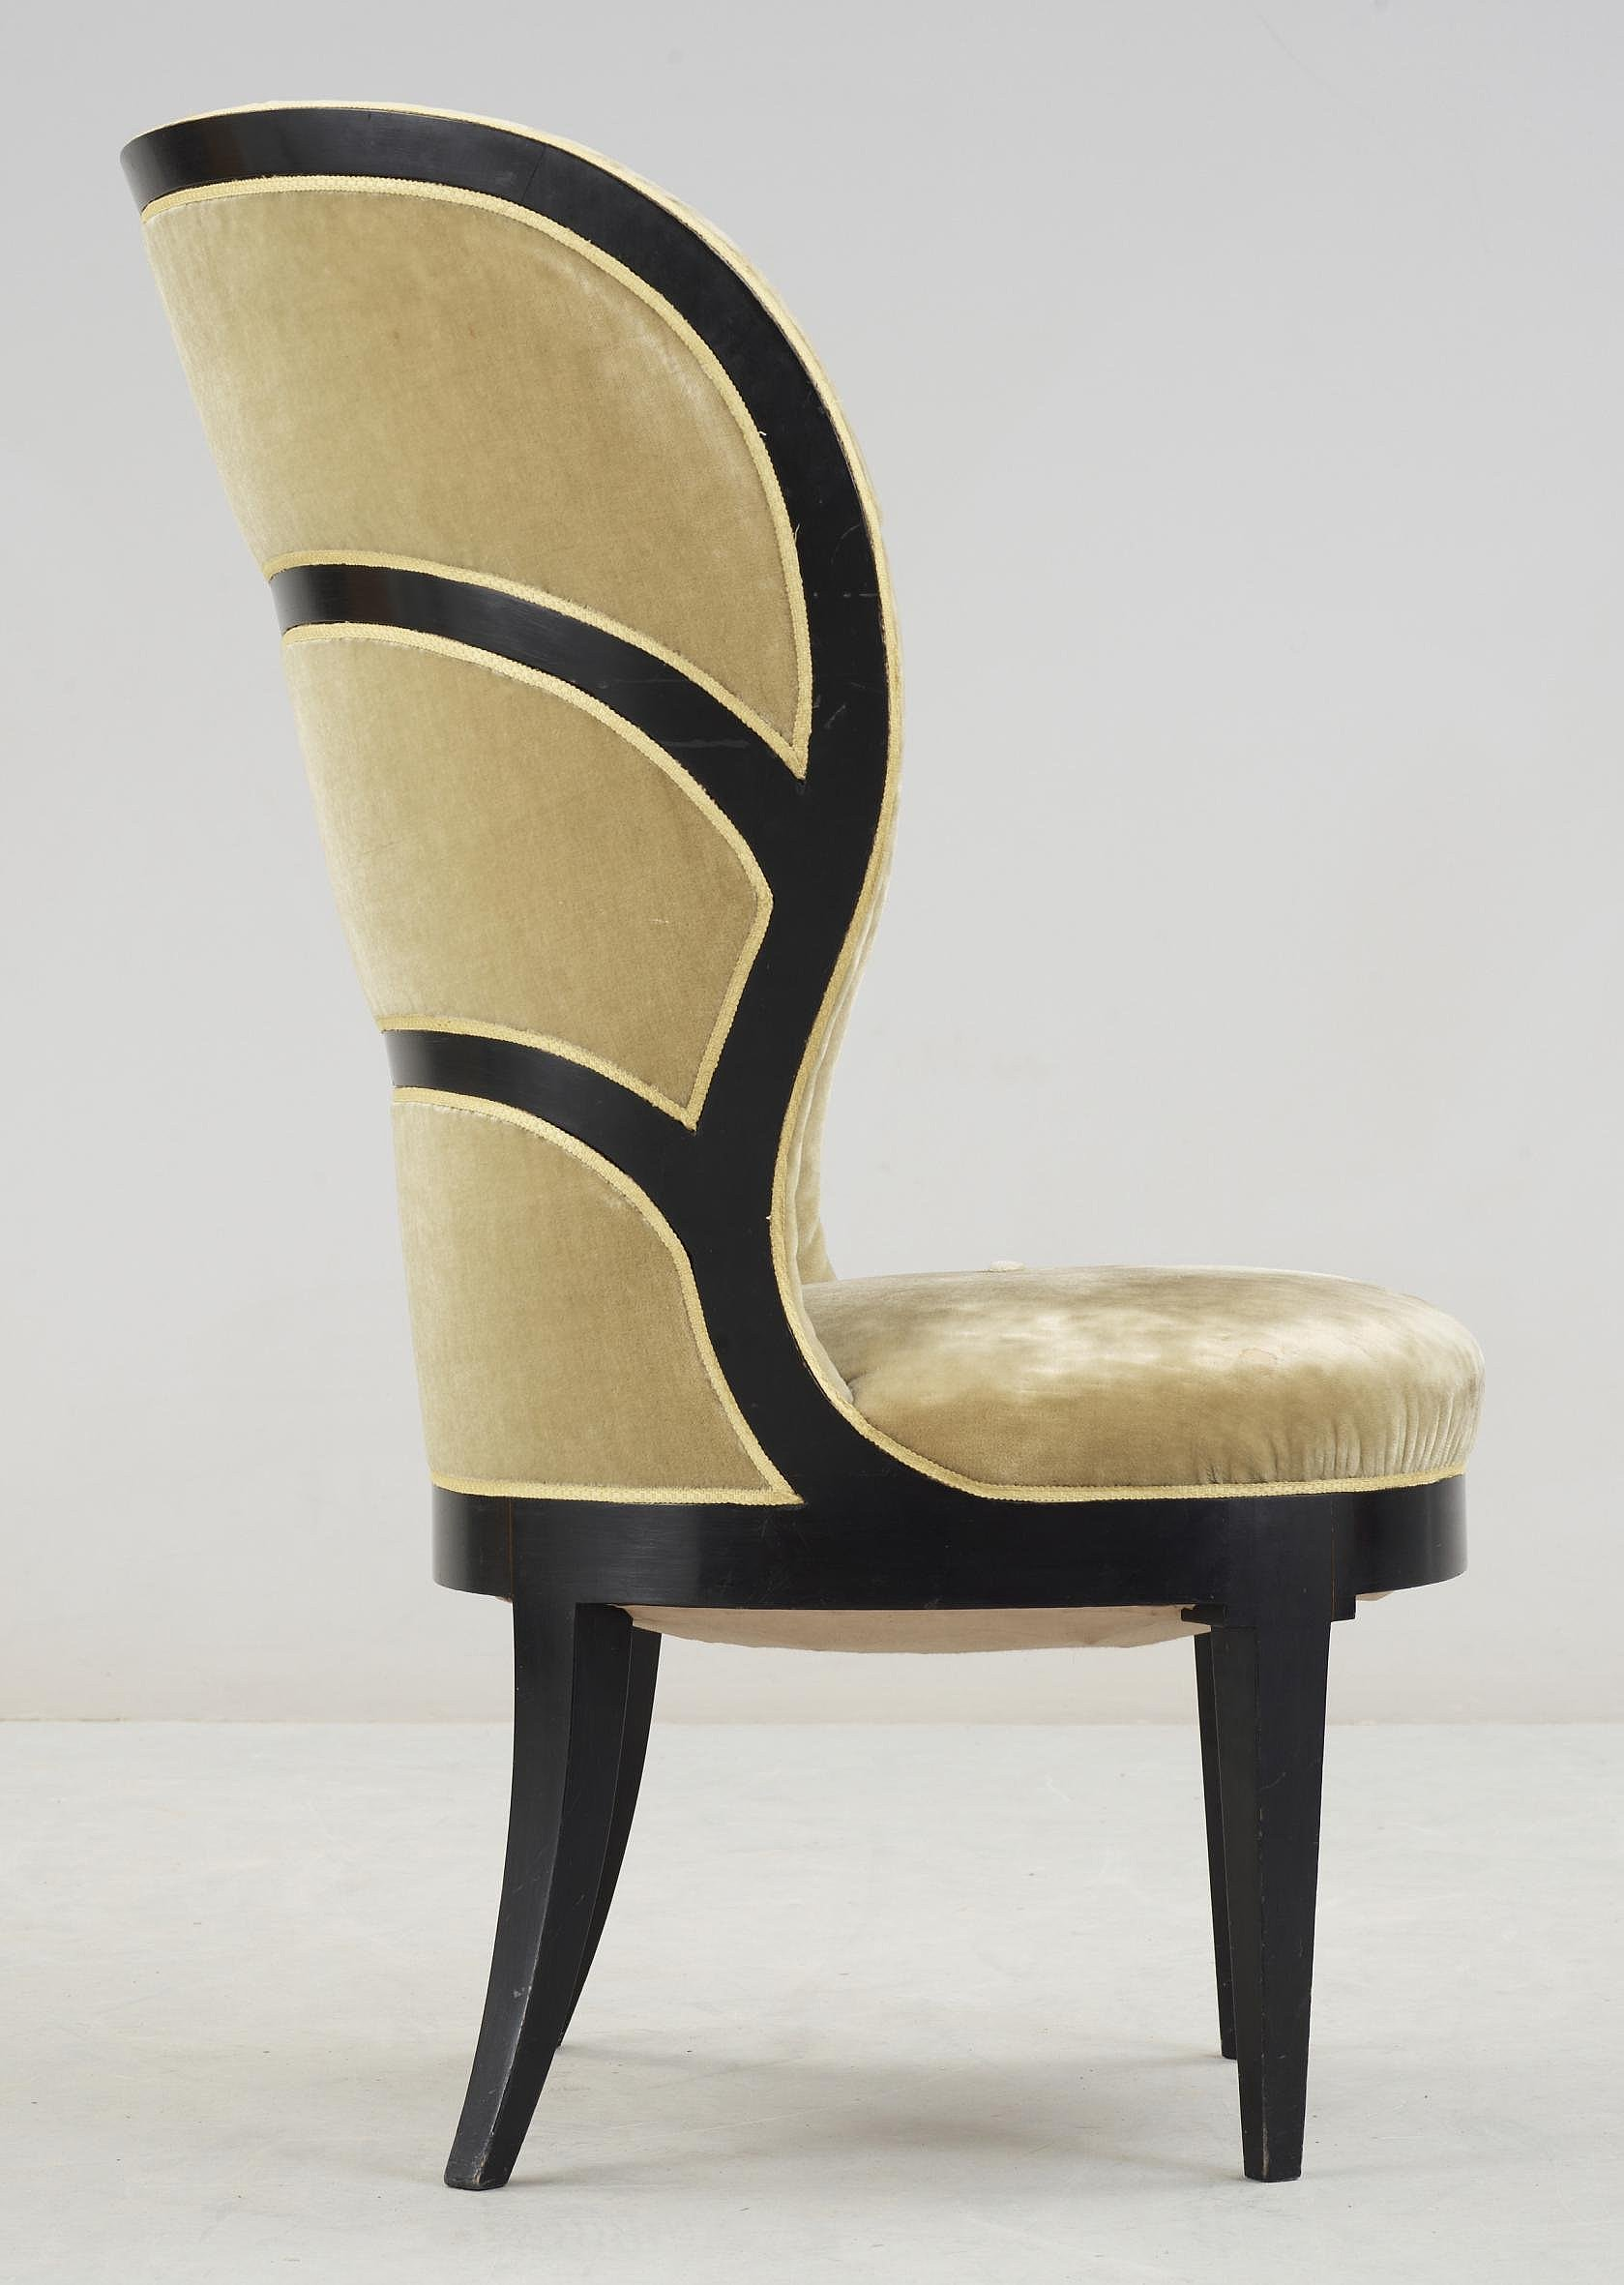 1000 Images About 1925 Chairs On Pinterest Armchairs